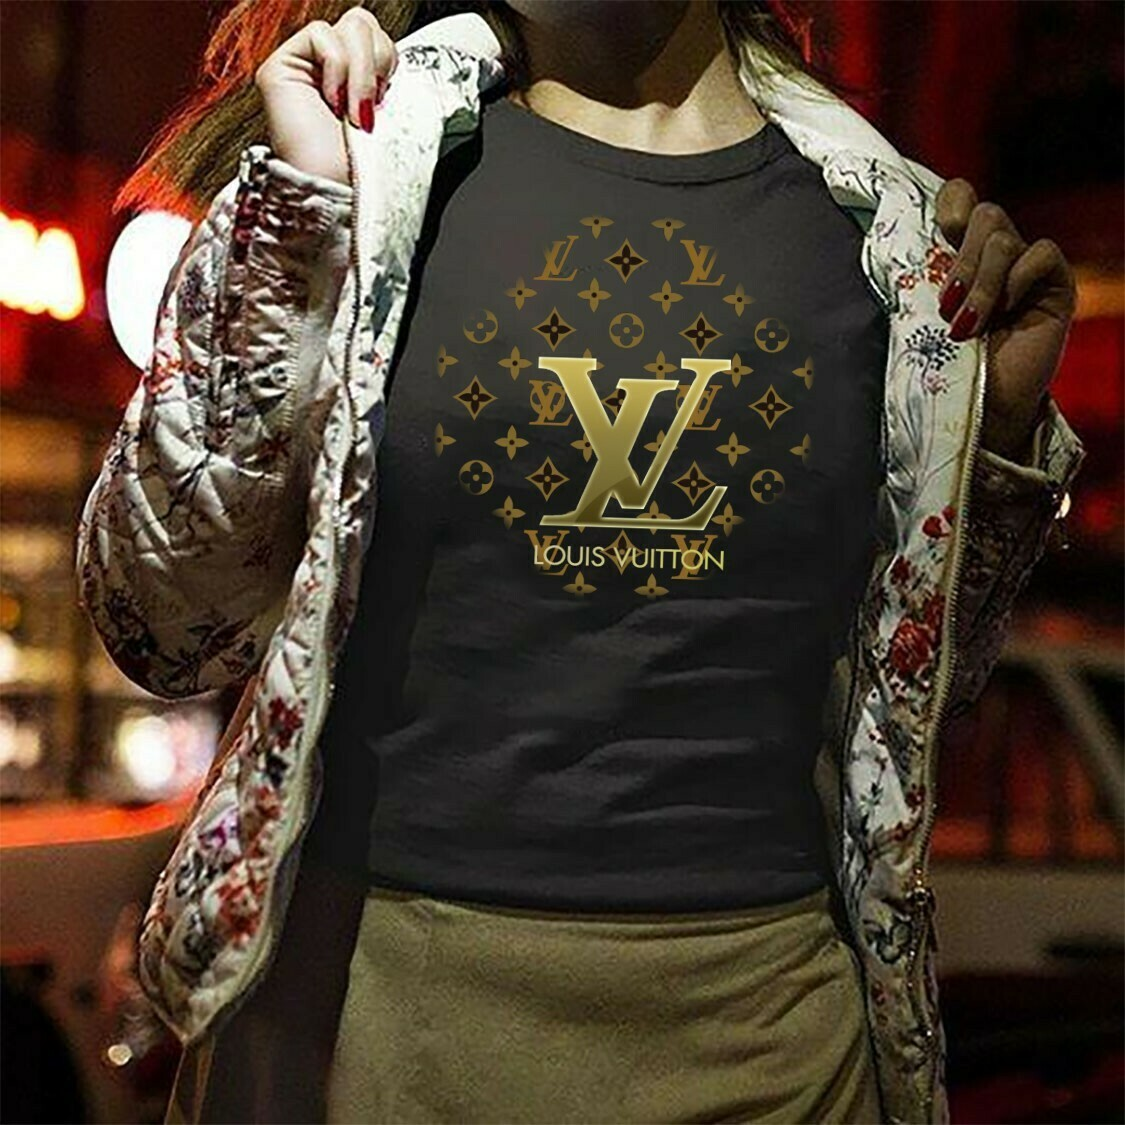 Louis Vuitton LV Brick Logo Quote,Louis Vuitton LV monogram Design Fashion,Valentine's day Gift s T-Shirt Hoodie Sweatshirt Sweater Tee Kids Youth Gifts Jolly Family Gifts